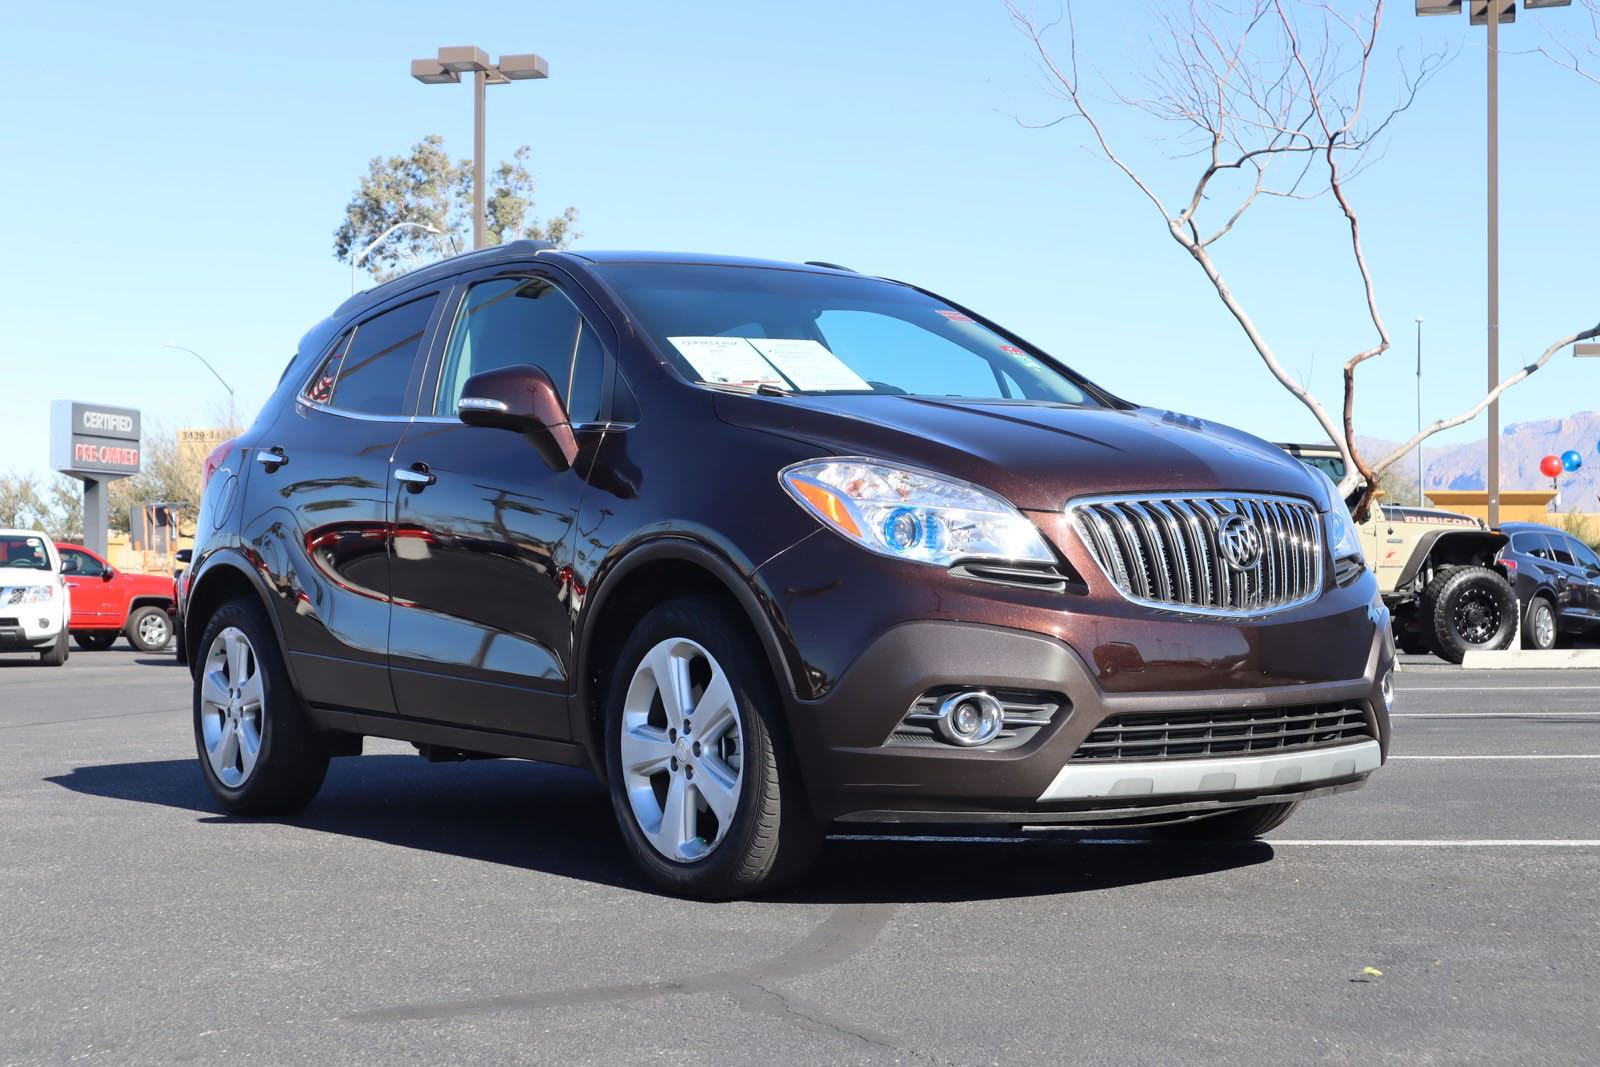 2015 Buick Encore FWD Convenience image